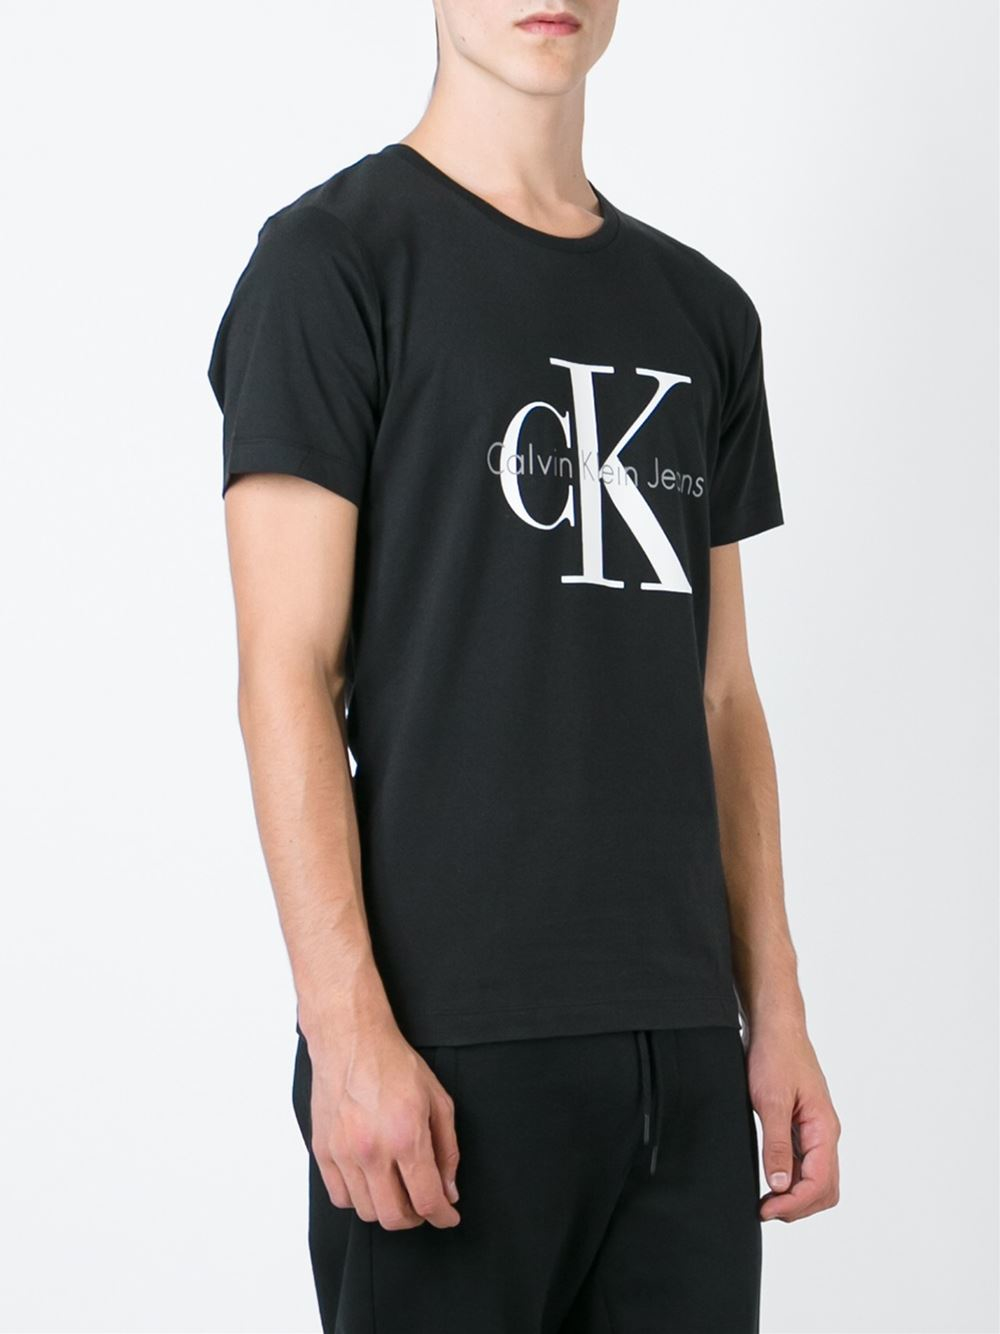 lyst calvin klein jeans logo print t shirt in black for men. Black Bedroom Furniture Sets. Home Design Ideas